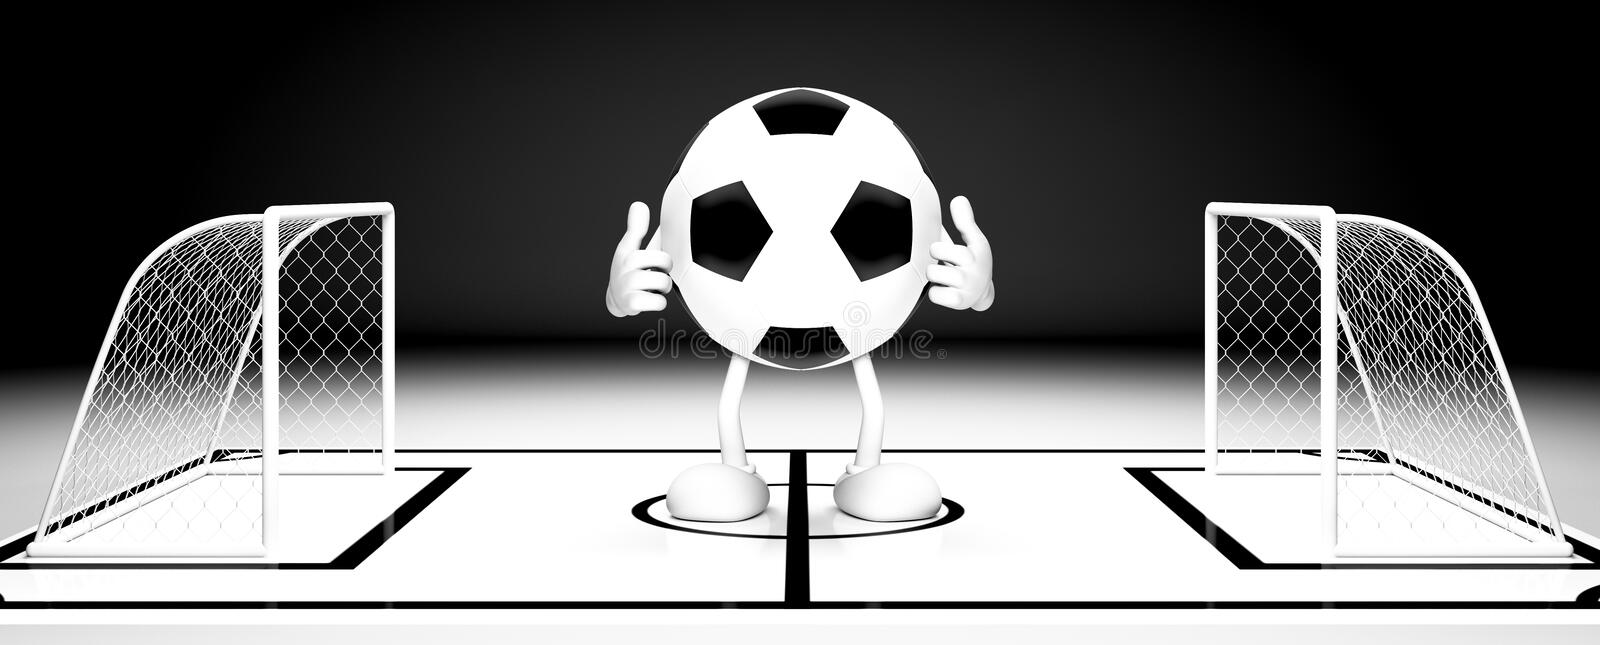 Soccer ball gate. 3d illustration vector illustration